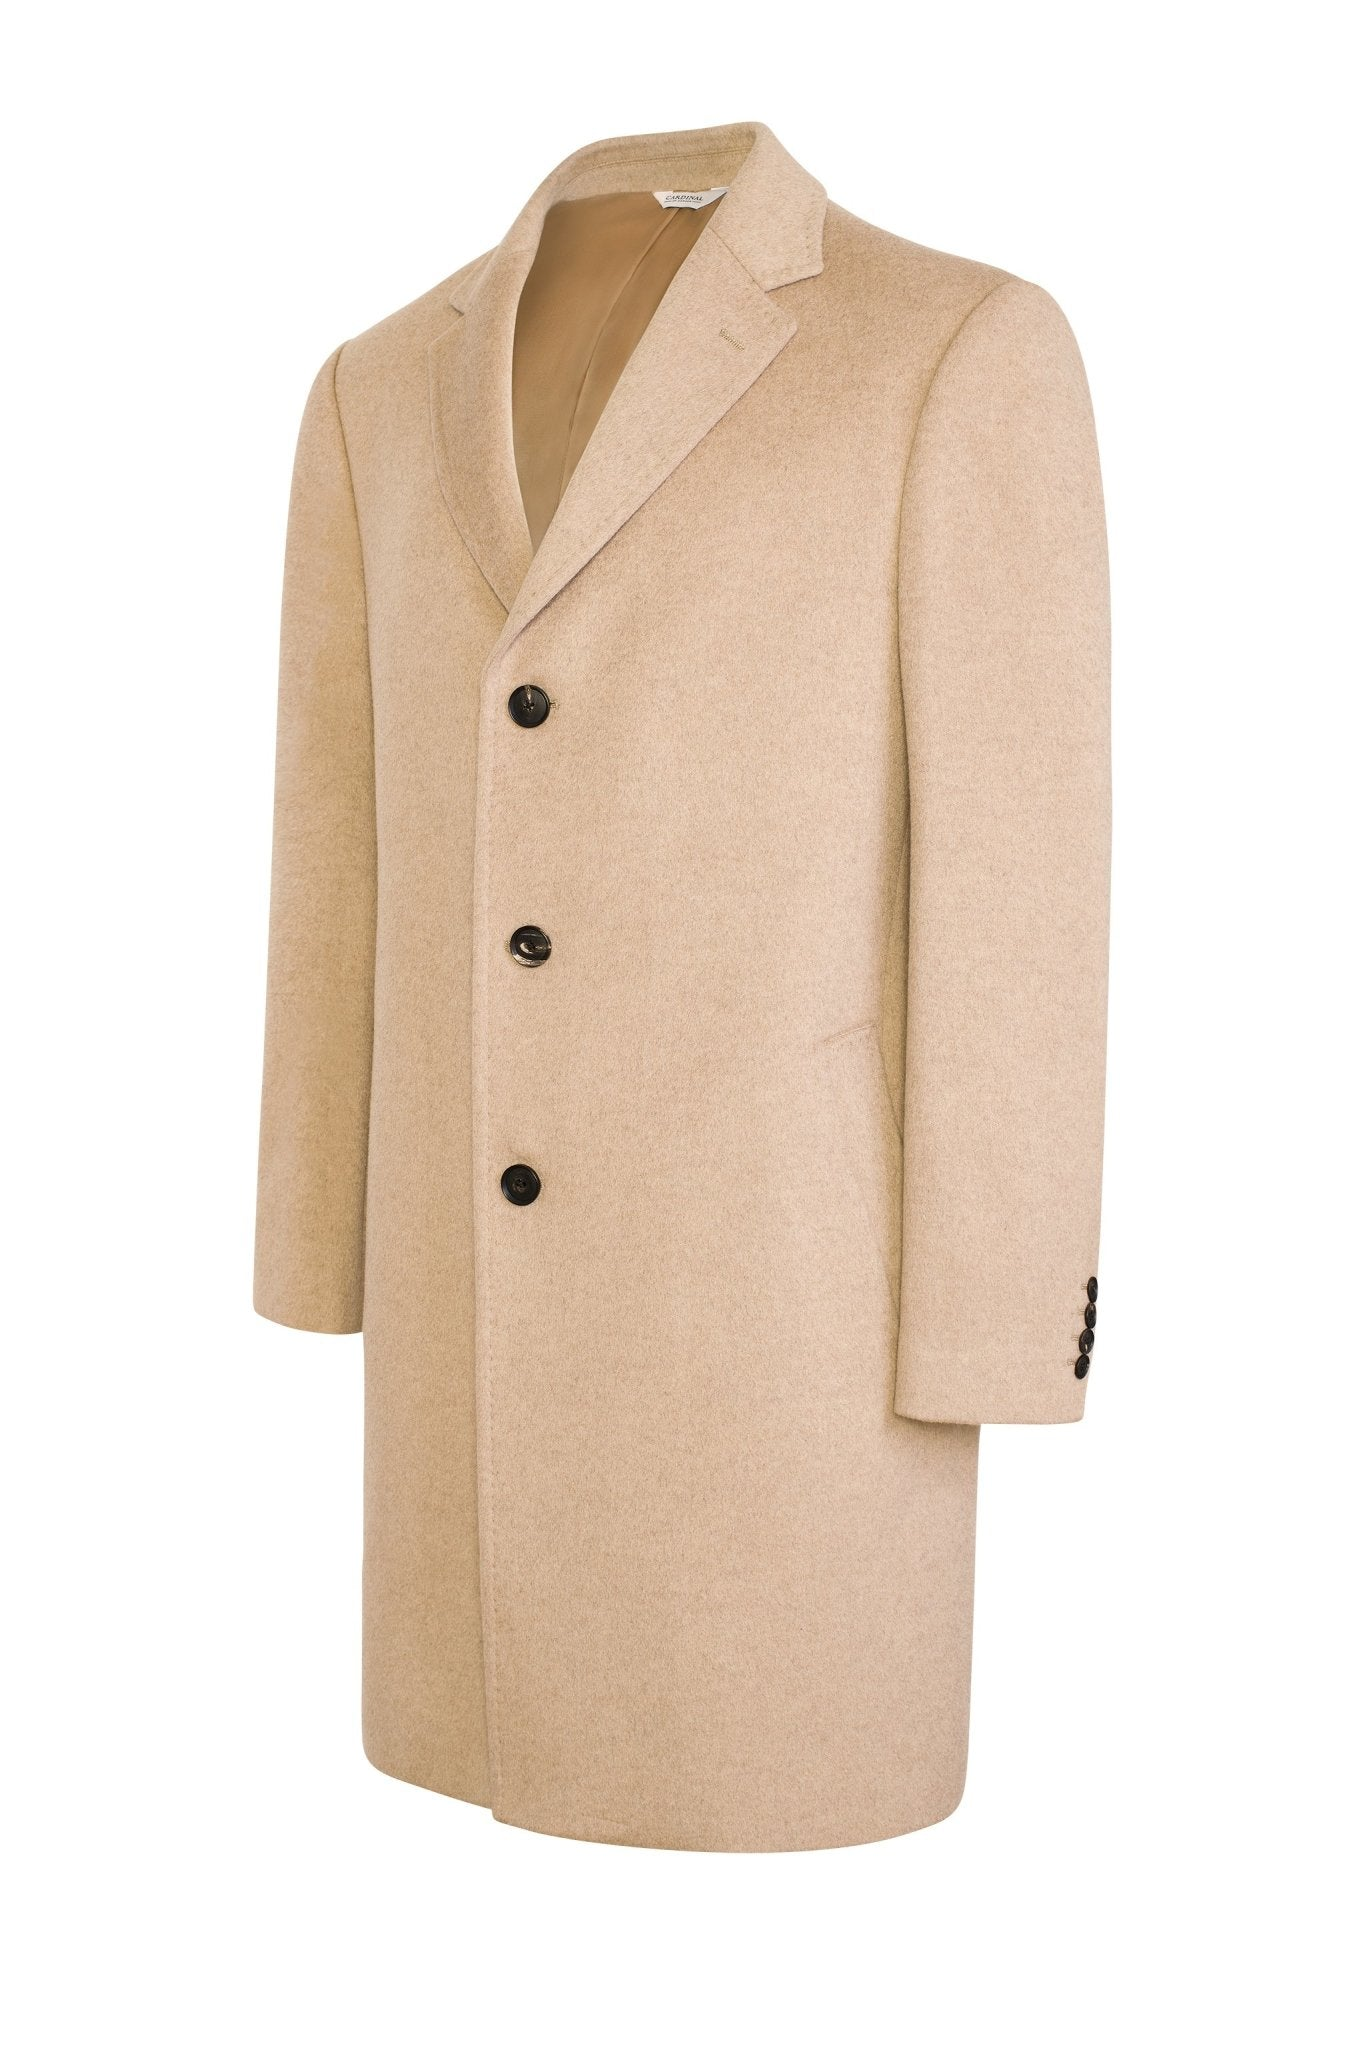 Oatmeal Saint-Pierre Pure Cashmere Overcoat - Cardinal of Canada-US